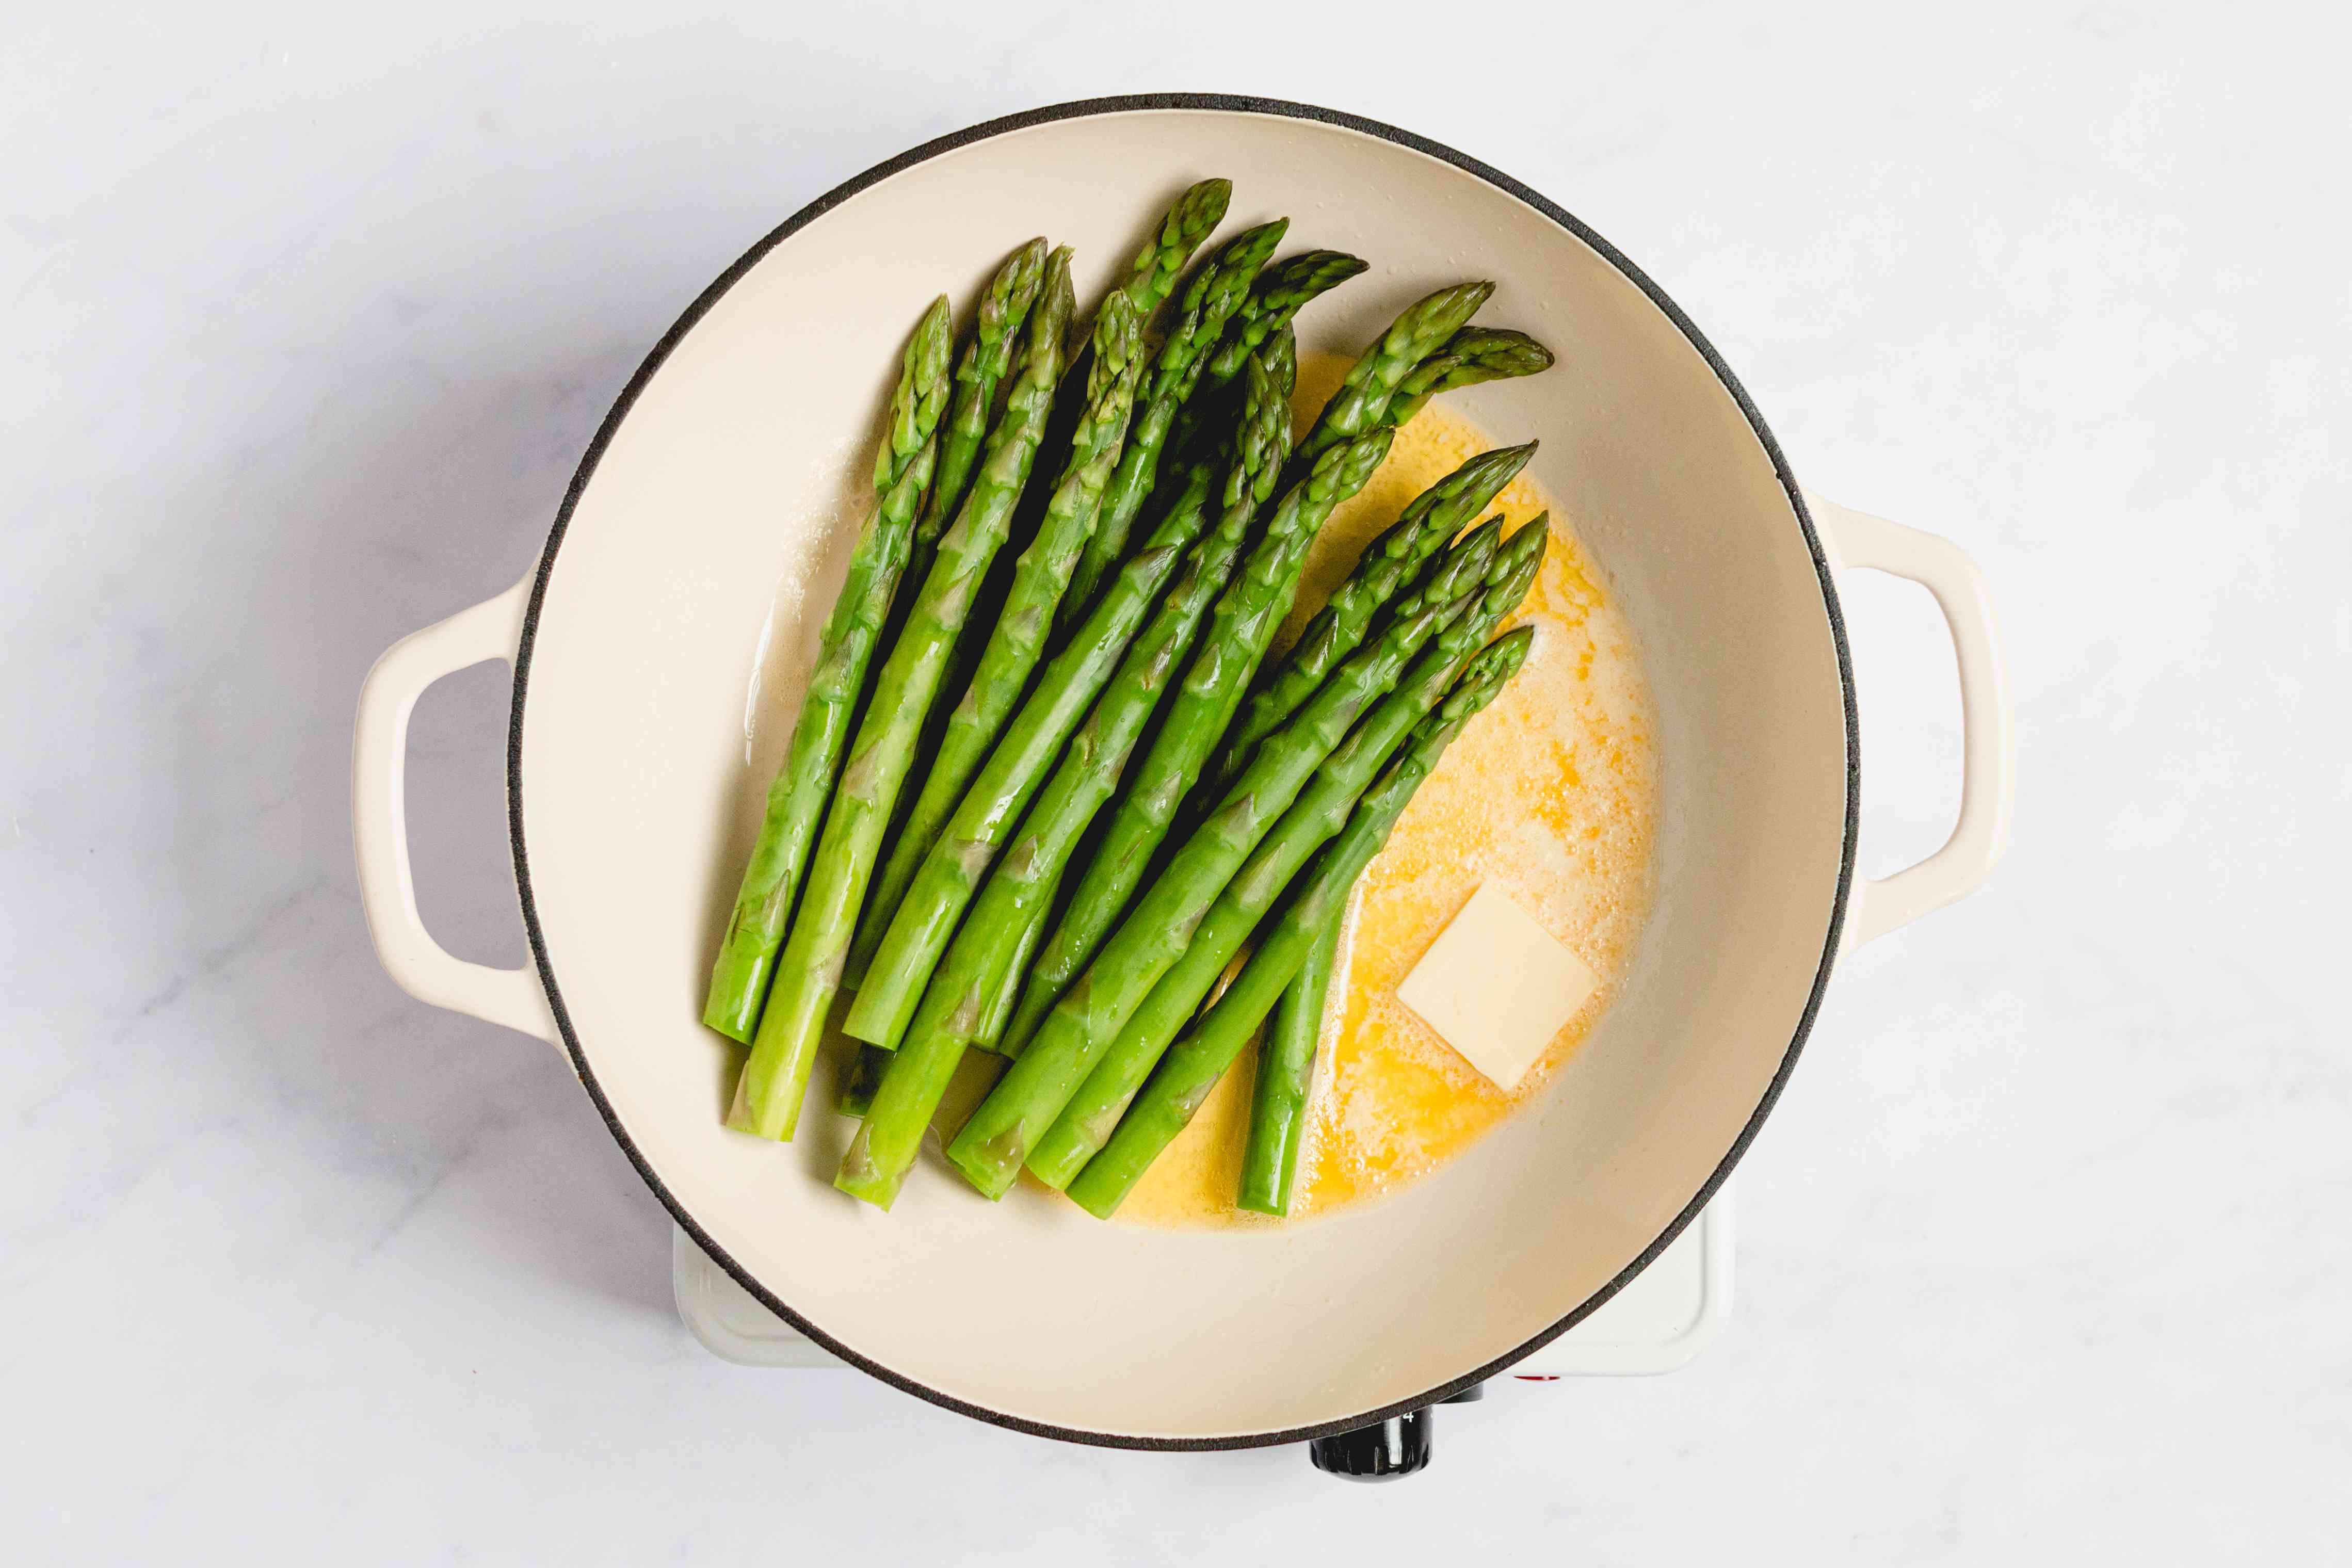 Asparagus cooking in a saucepan with butter